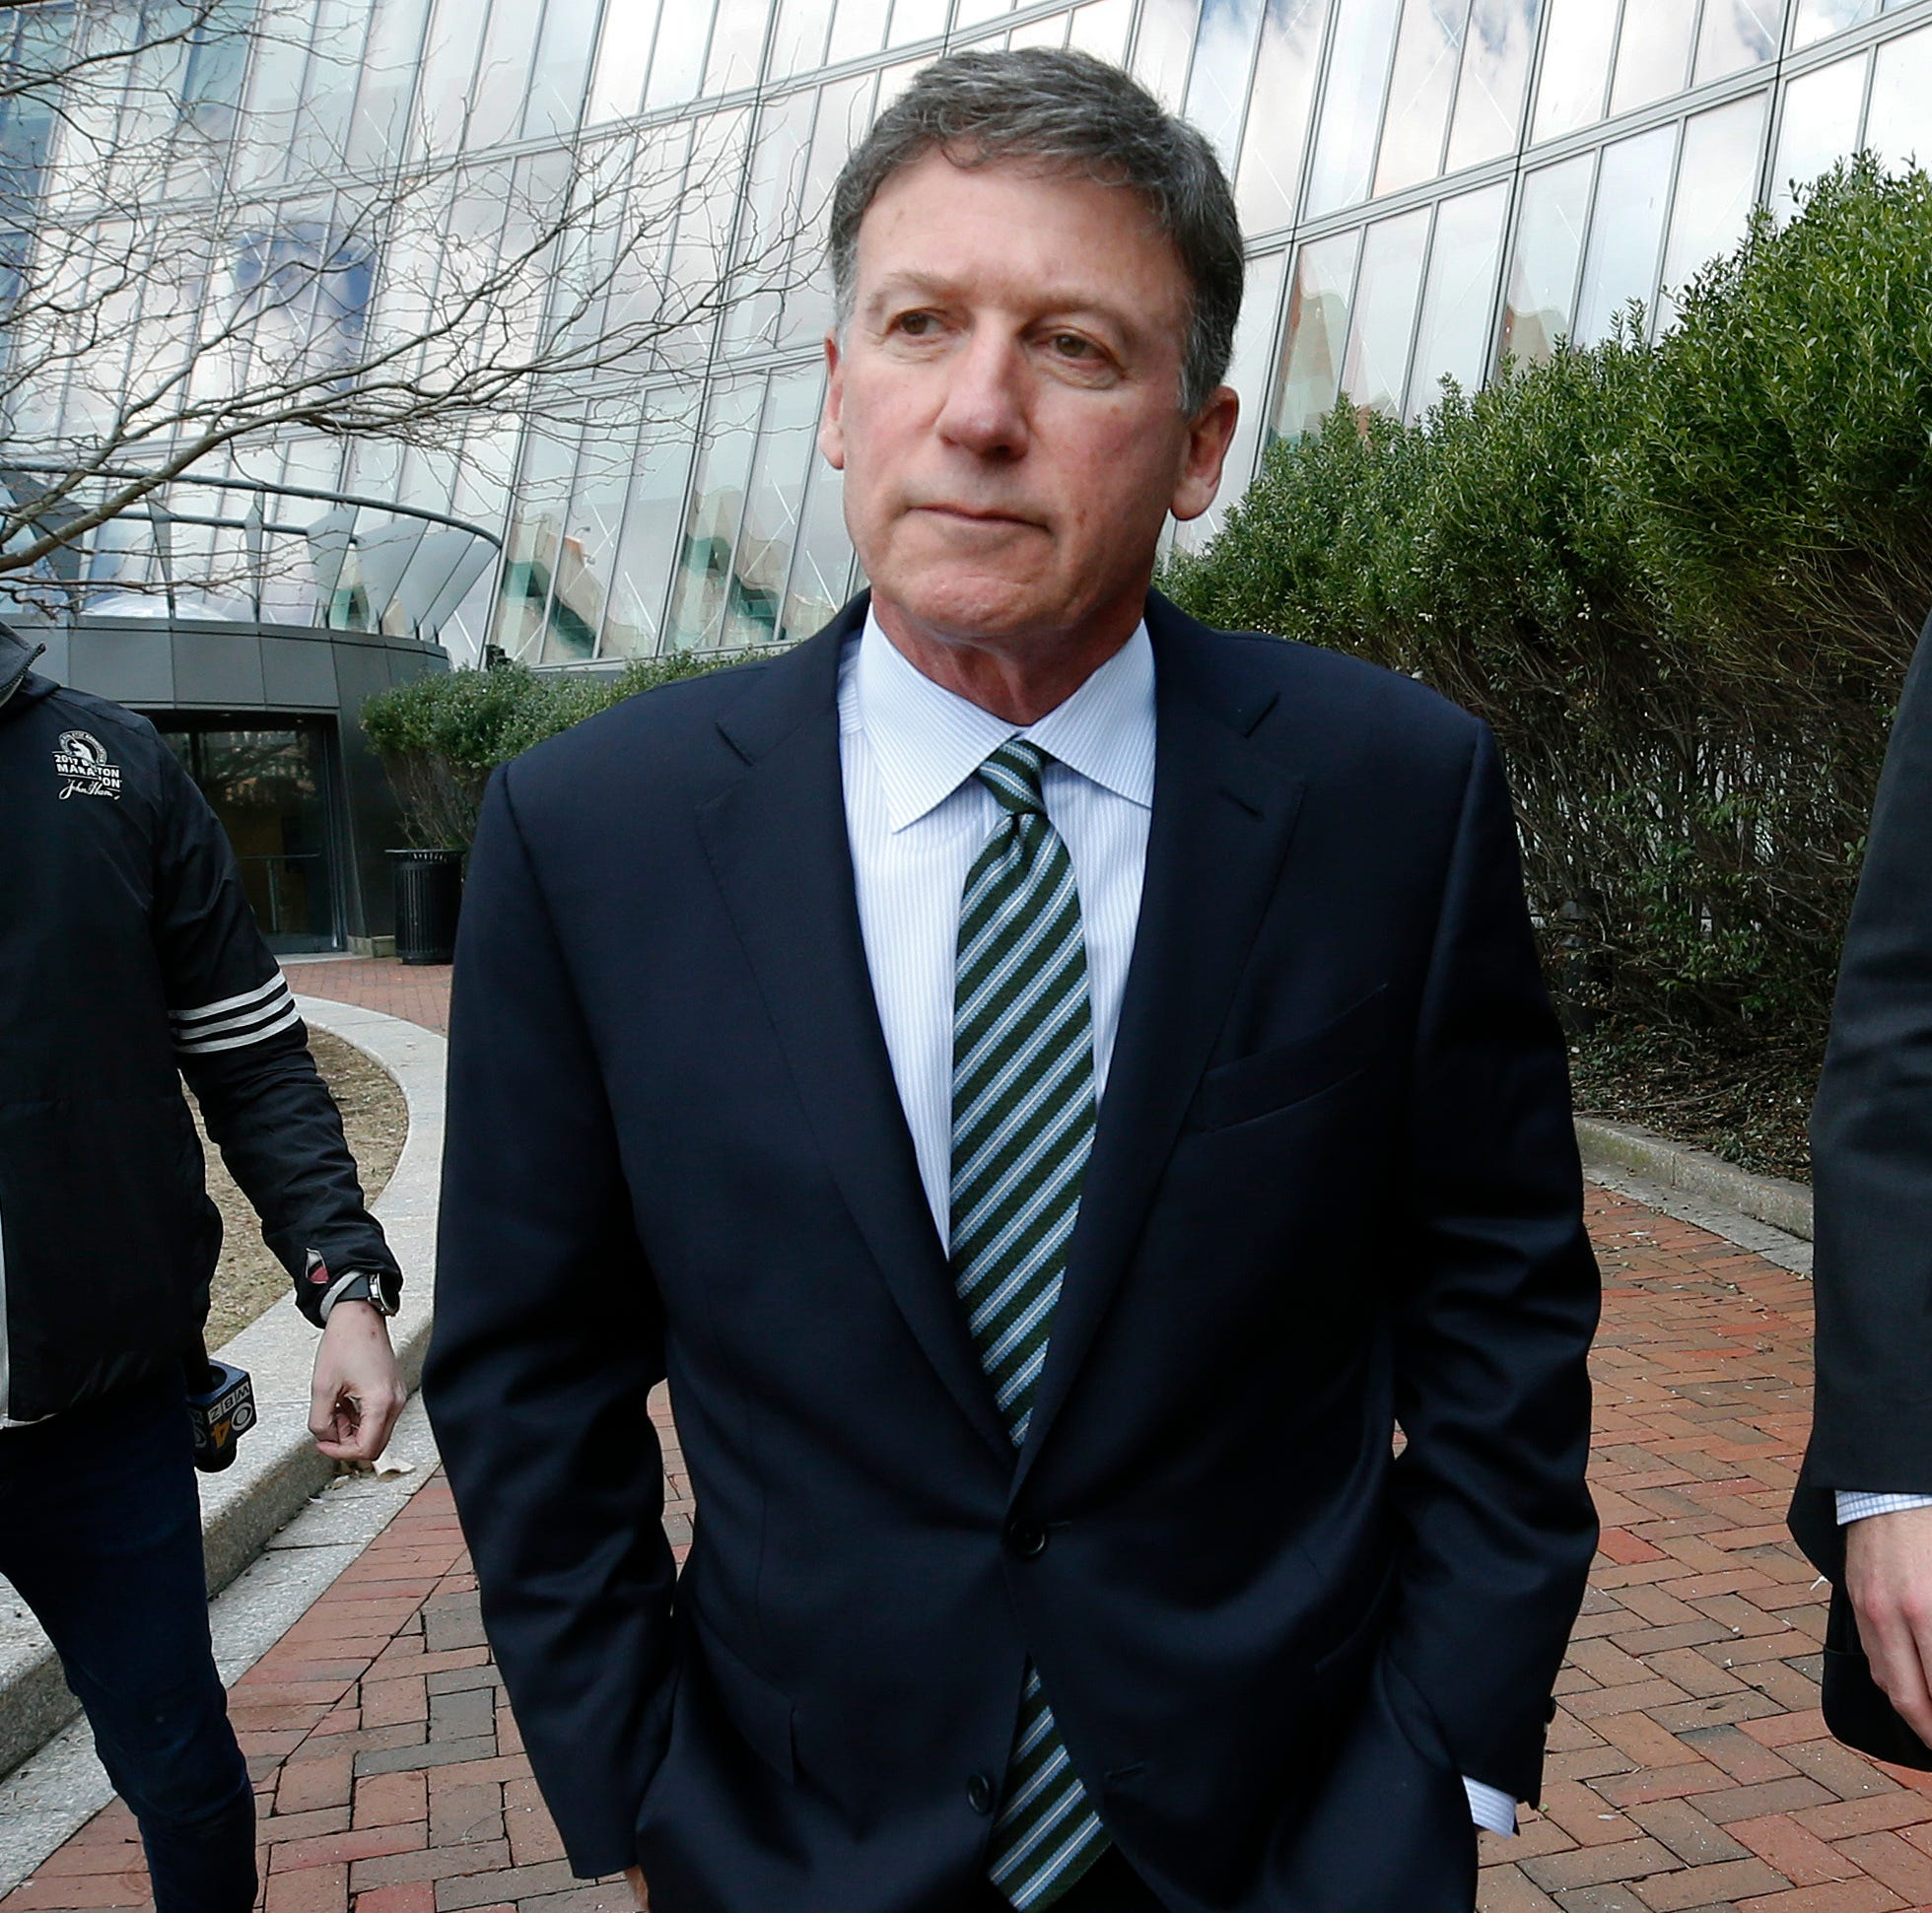 Wealthy California couple pleads guilty in college admissions scandal